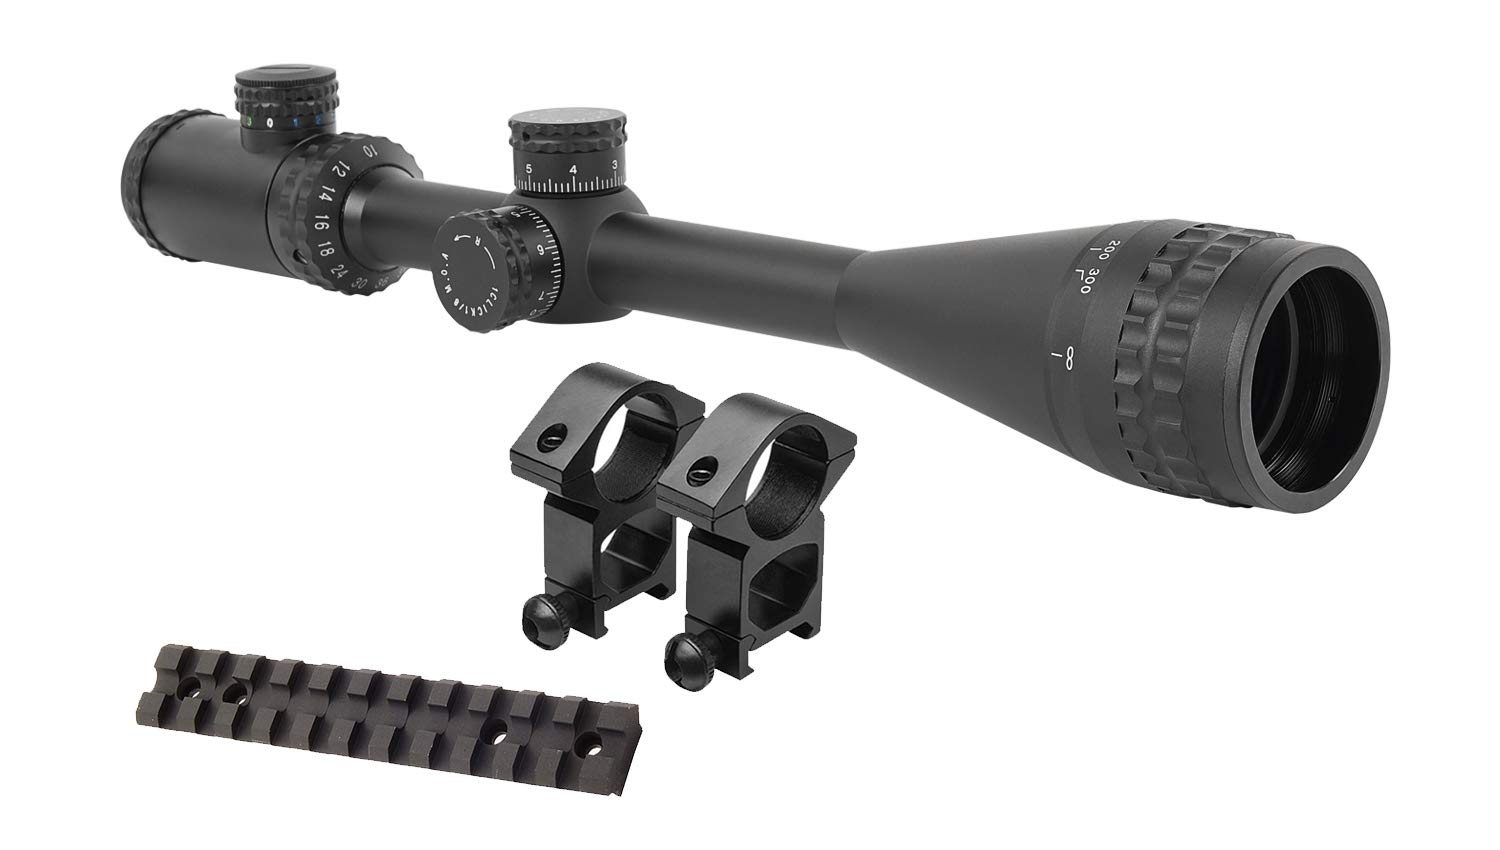 M1SURPLUS Presents This Tactical Kit for Ruger 10 22 Rifles – Includes A Hi-Power 8-32×50 Illuminated Rifle Scope Sun Shade Flip-Up Lens Covers Scope Rings Scope Mount Rail